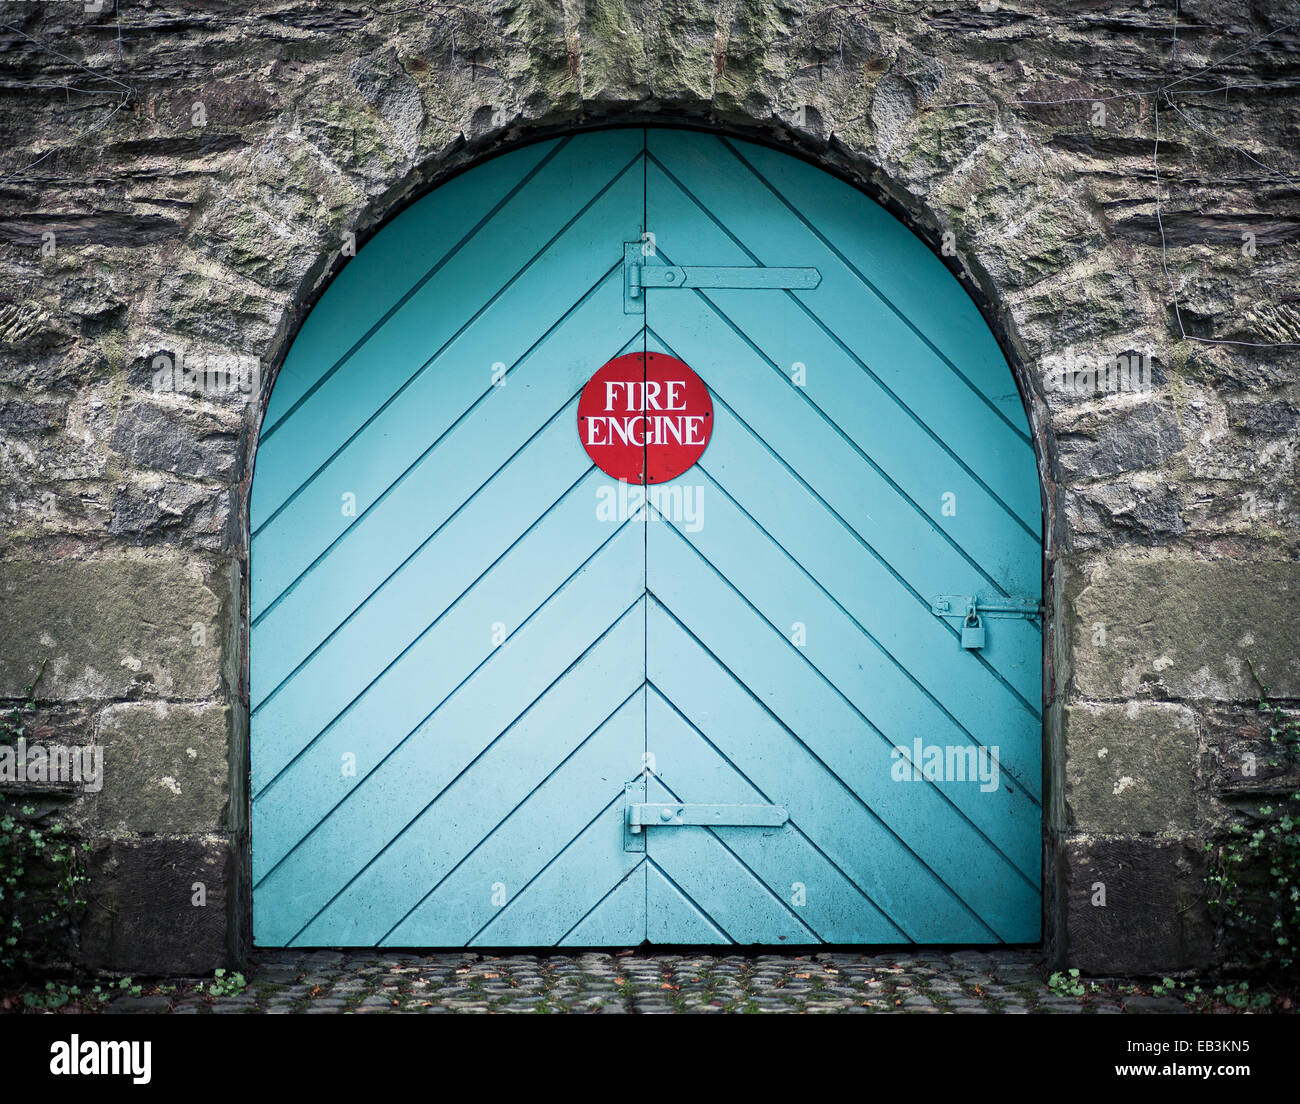 fire station, fire engine blue door at portmerion north wales uk, unusual fire engine sign on the door - Stock Image